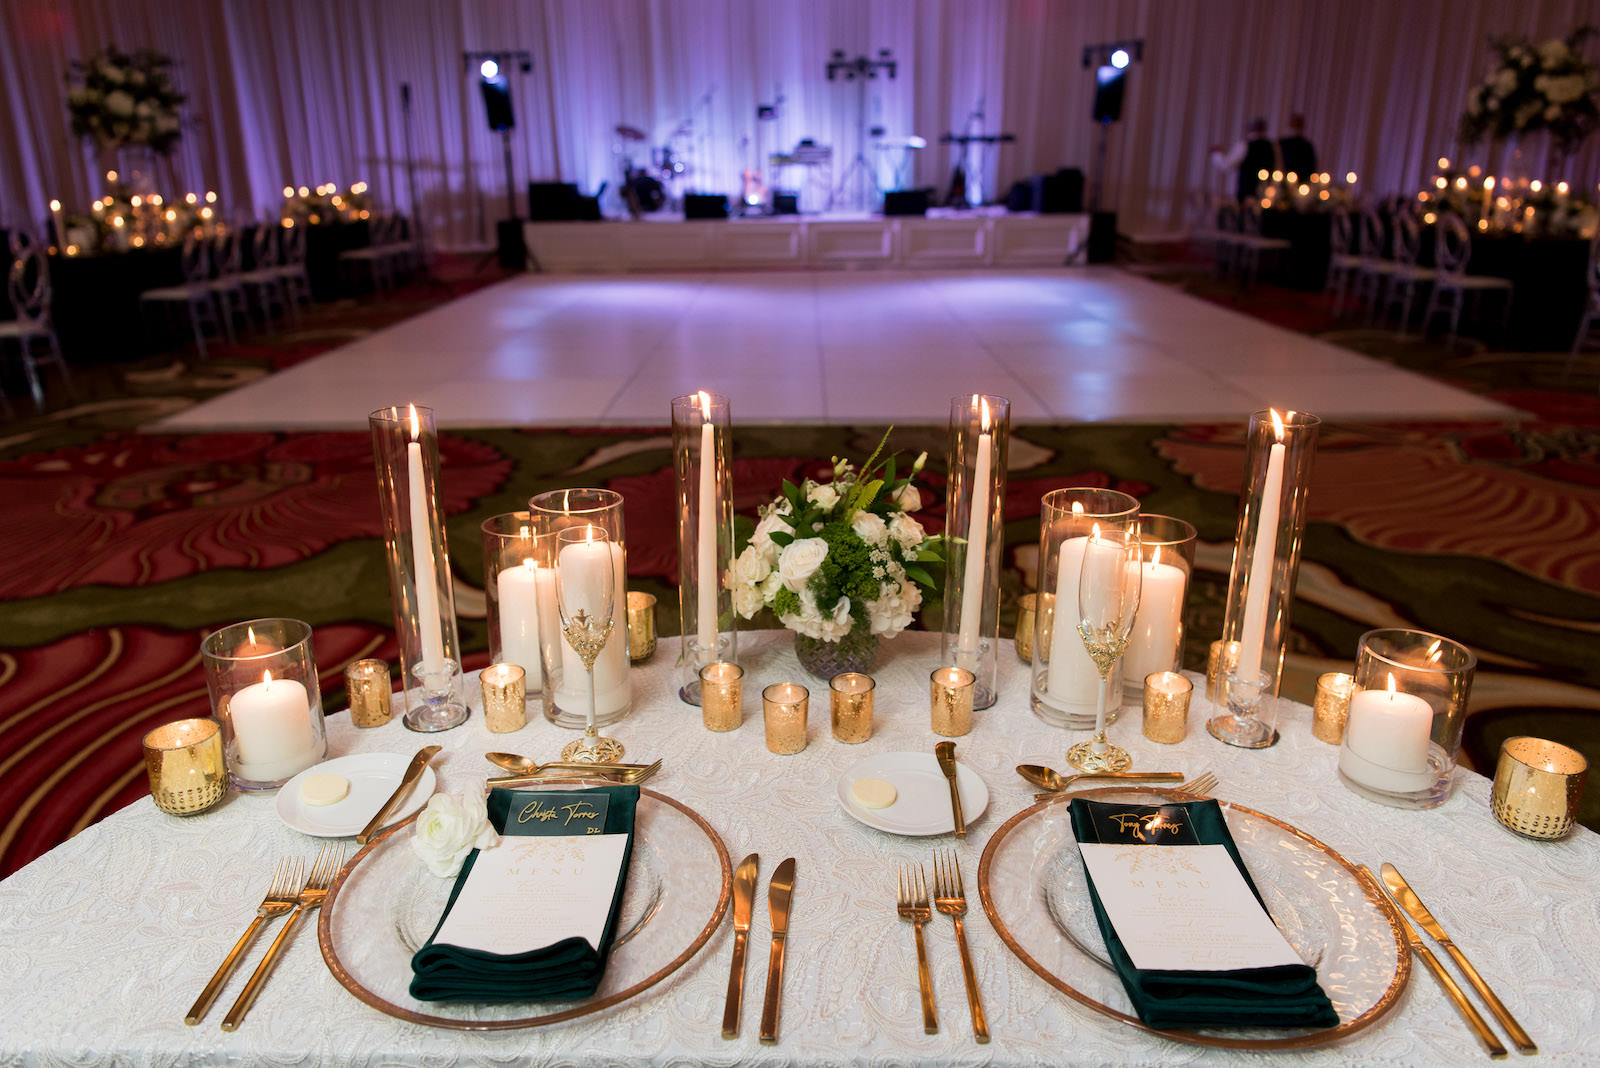 Elegant Wedding Reception Decor, Sweetheart Table with Ivory Lace Linen, Gold Rimmed Chargers and Flatware, White Candles | Tampa Bay Wedding Planner Parties A'la Carte | St. Pete Wedding Venue The Vinoy | Wedding Rentals A Chair Affair | Wedding Florist Bruce Wayne Florals